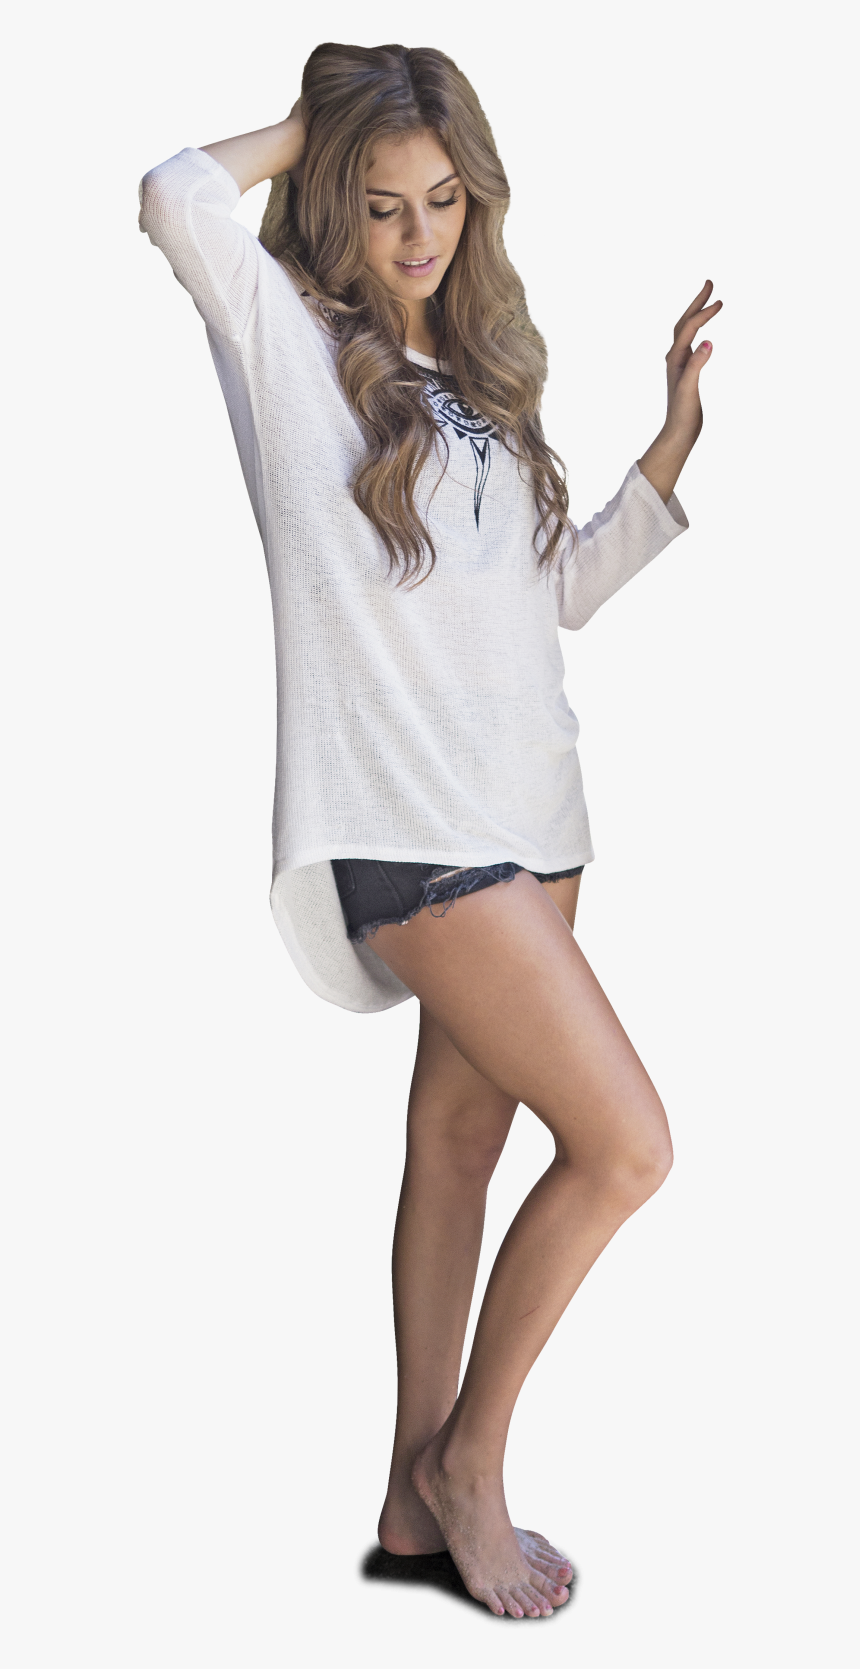 Woman Model Standing In Beautiful Pose Beautiful Girl Pose Transparent Background Hd Png Download Kindpng